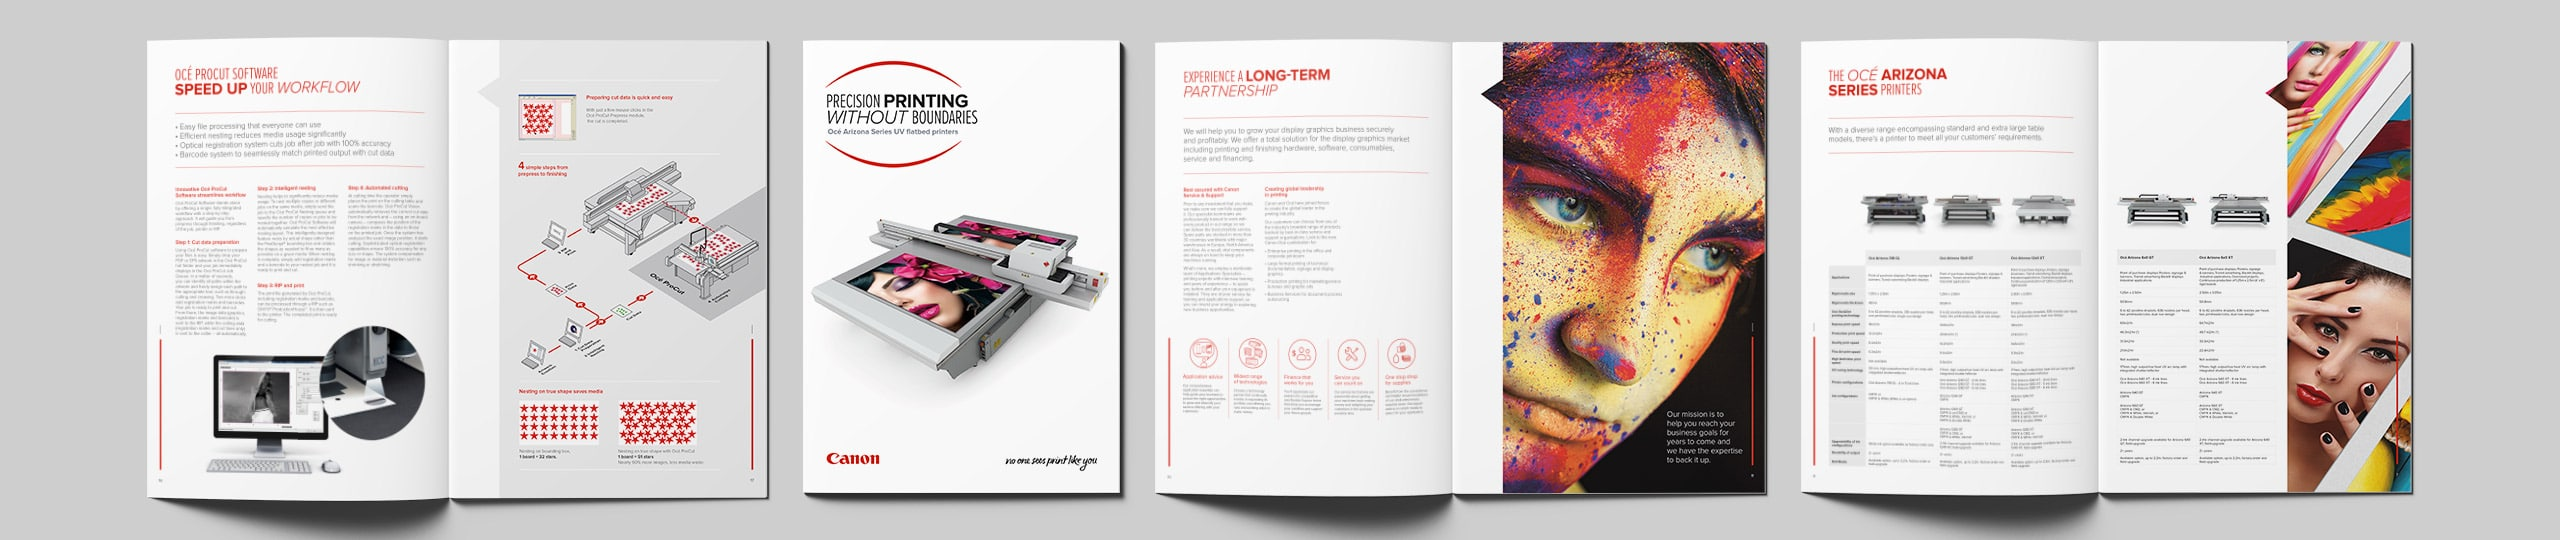 Canon No one sees print like you Brochure Brand Strategy Marketing Campaign Brand Design